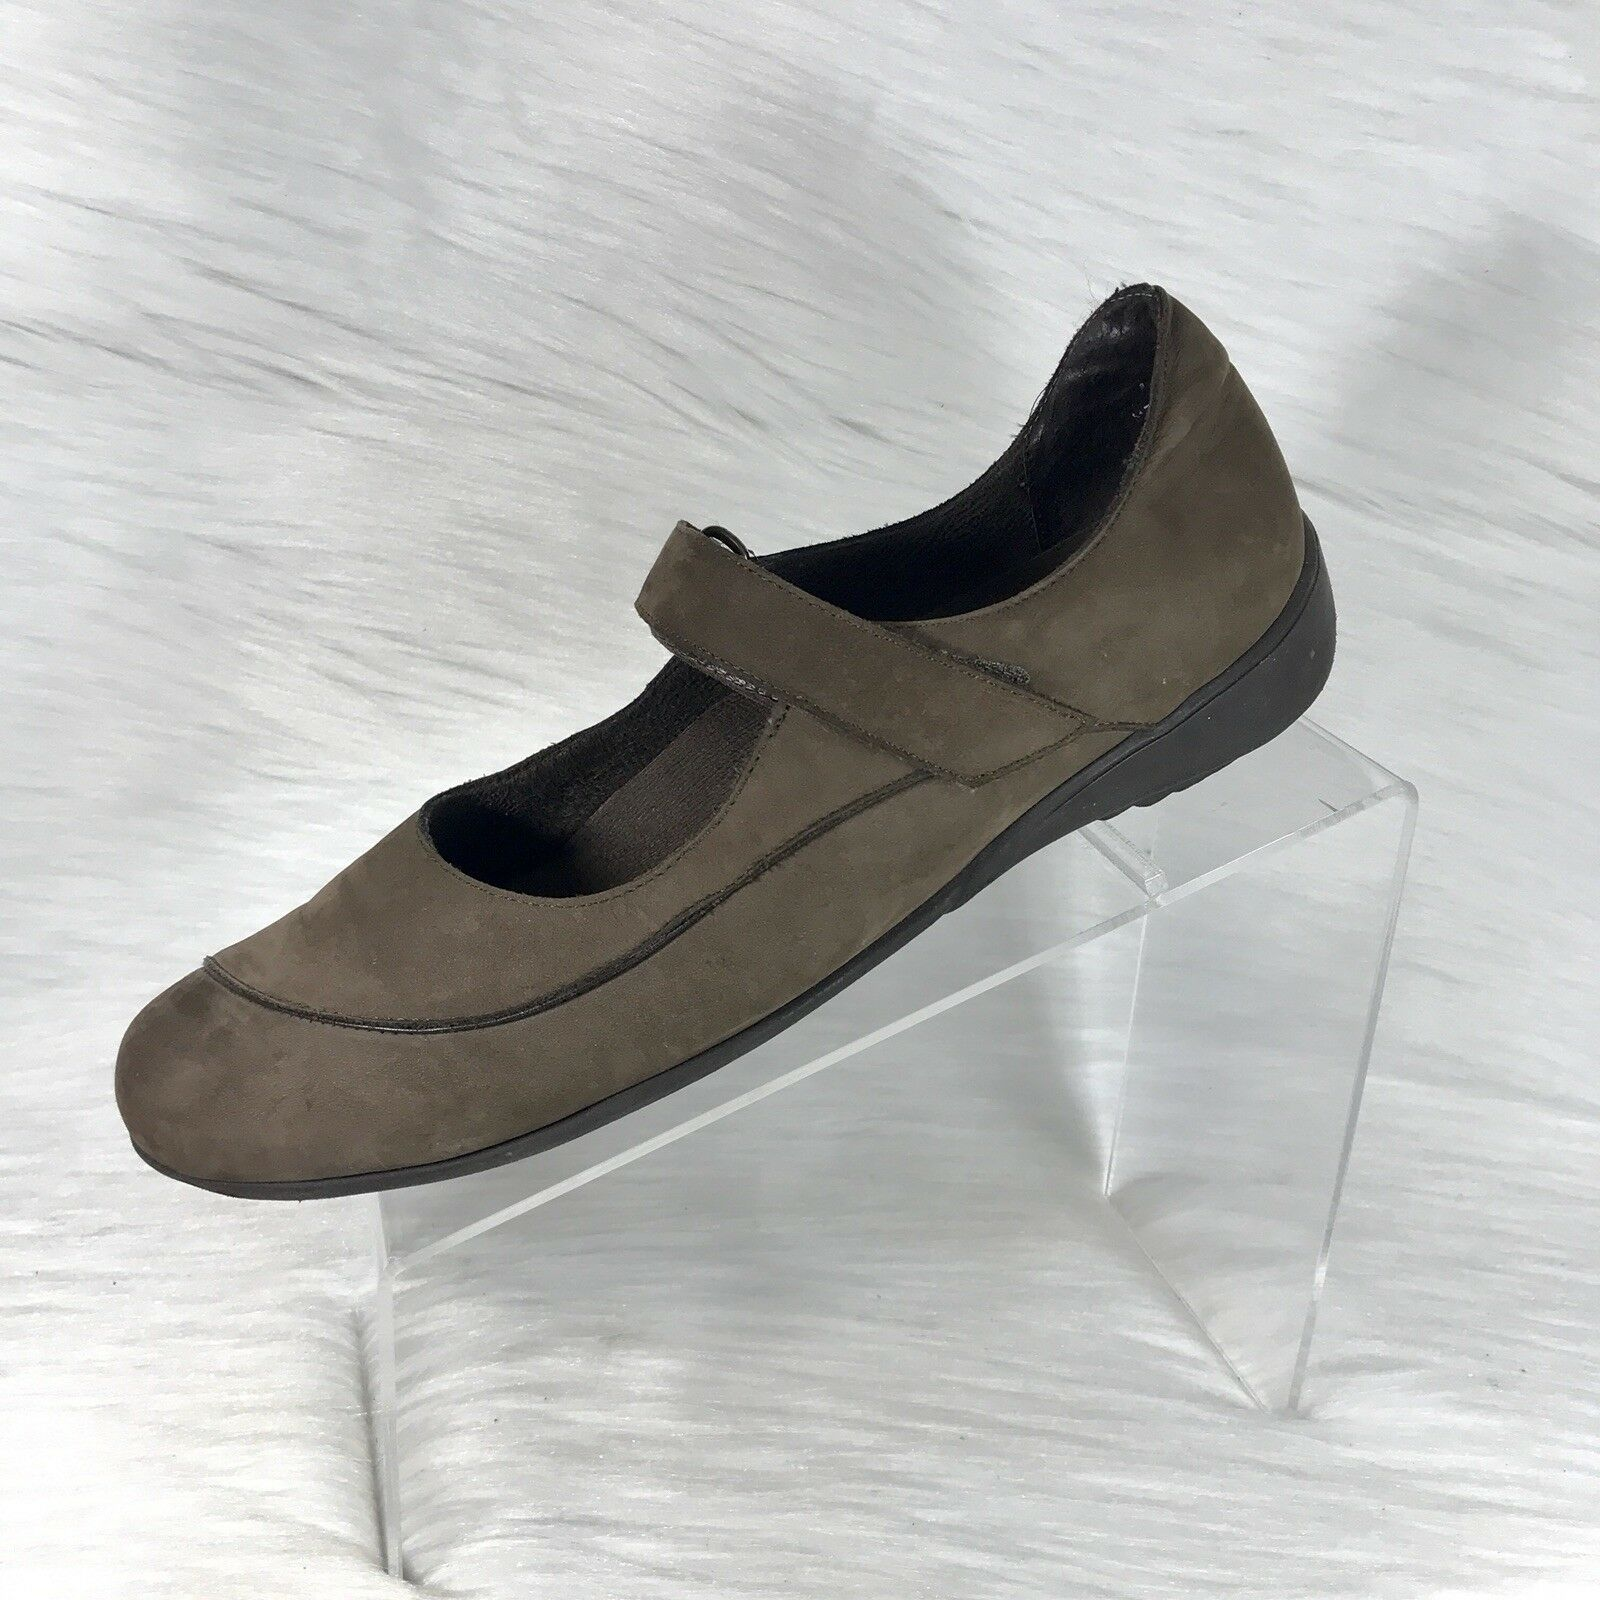 Munro American Women's Mary Jane shoes Brown Leather Size 11 M